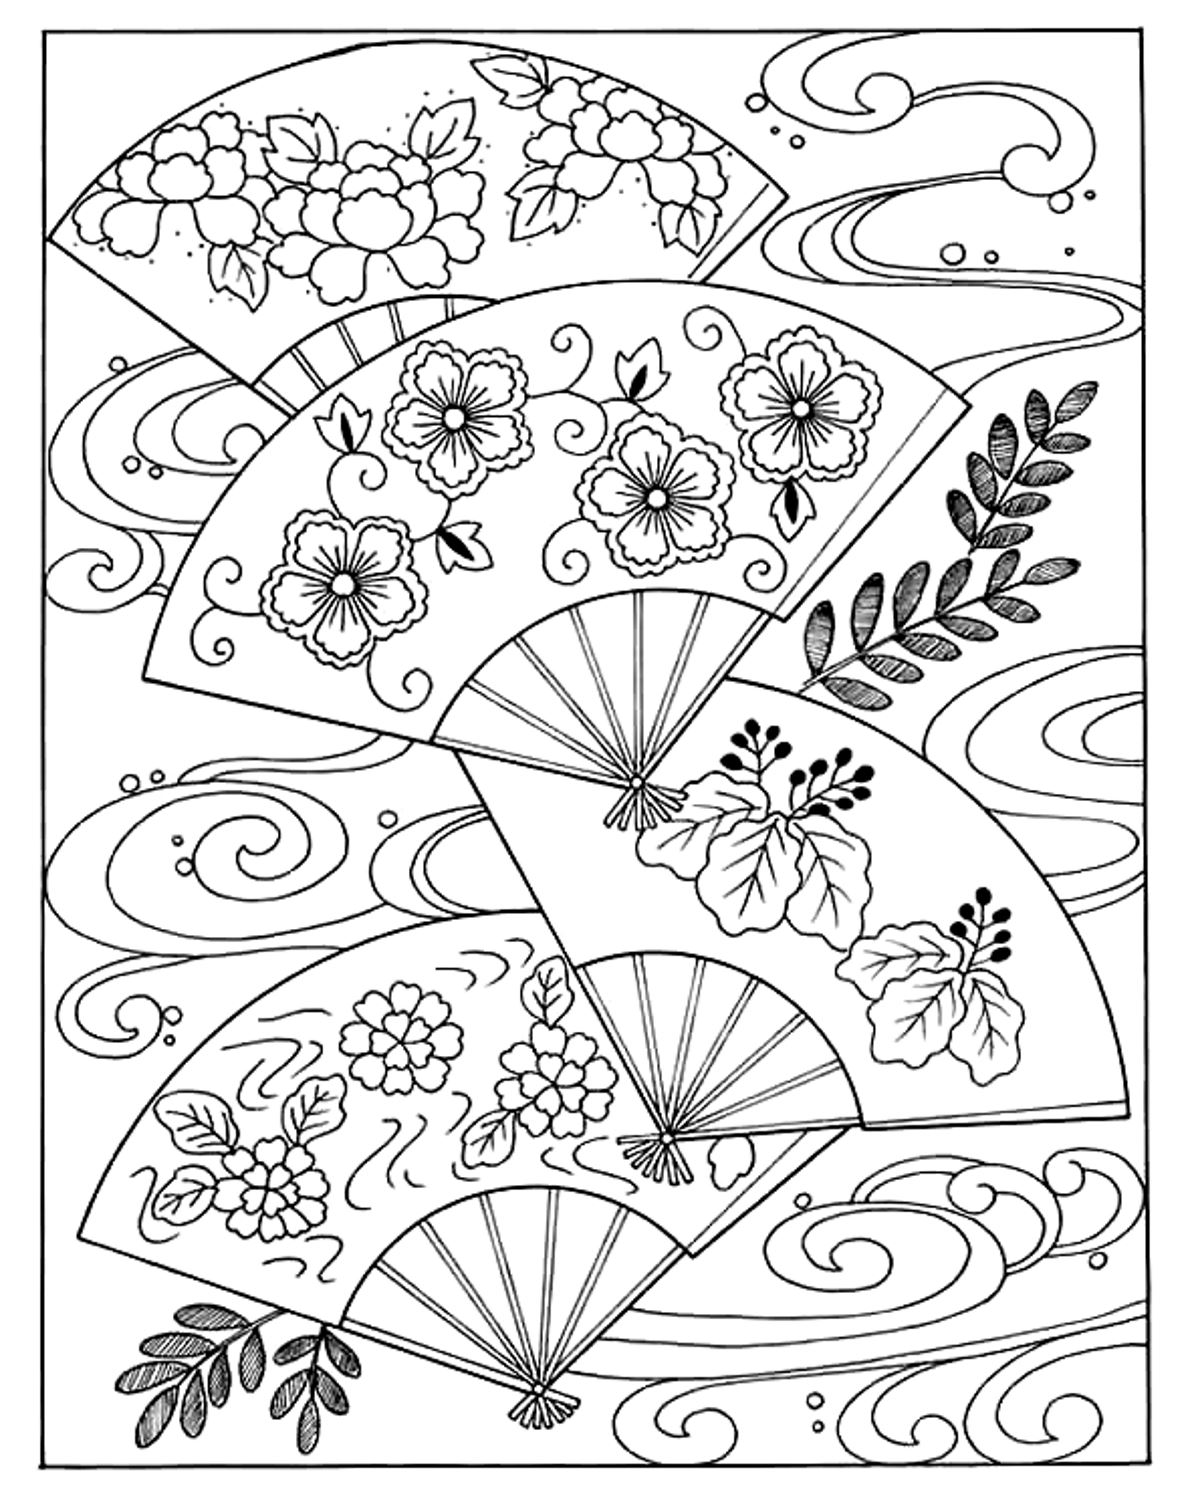 kawaii coloring pages, japanese girl coloring pages, japanese fan coloring pages, japanese dragon coloring pages, japanese cherry blossom coloring pages, anime coloring pages